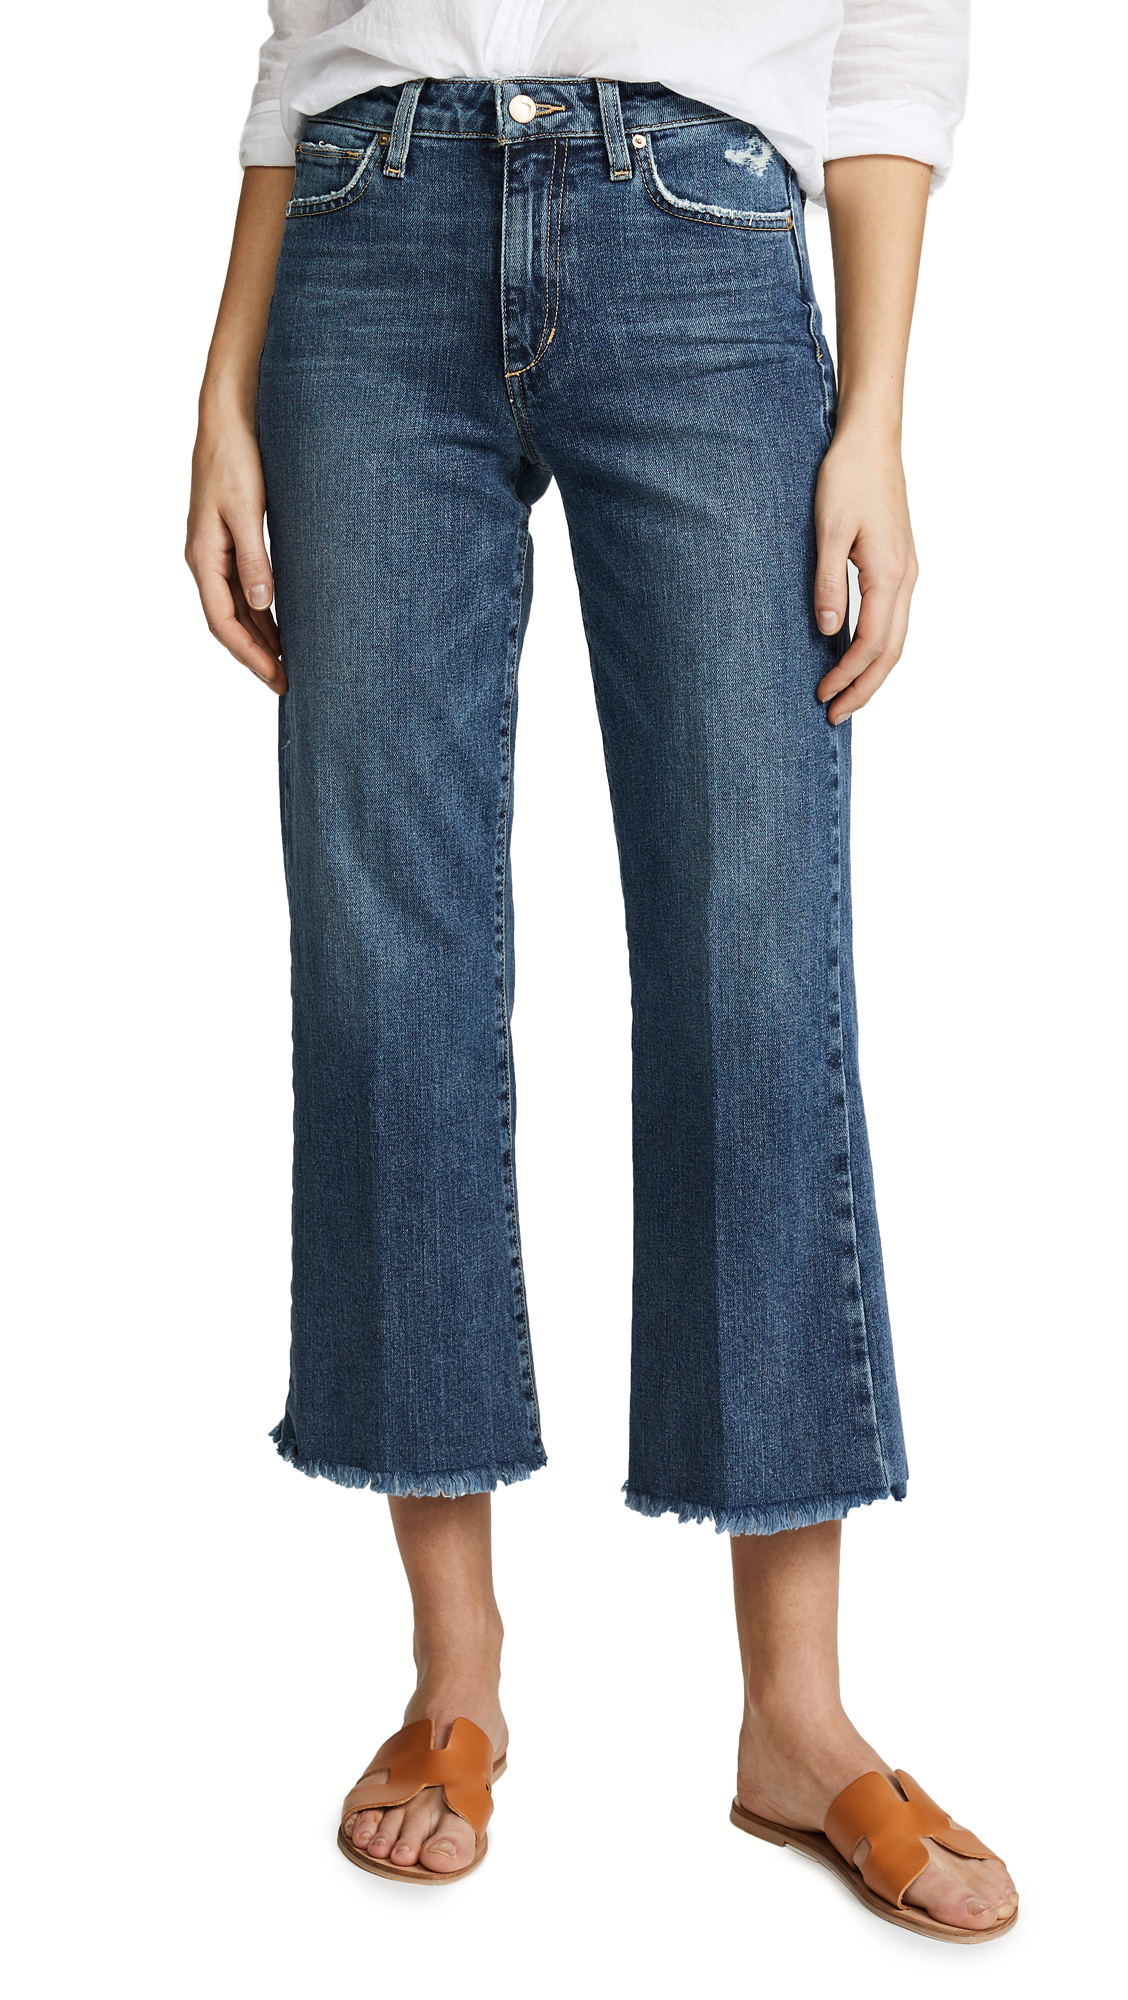 THE WYATT HIGH RISE RETRO CROP JEANS